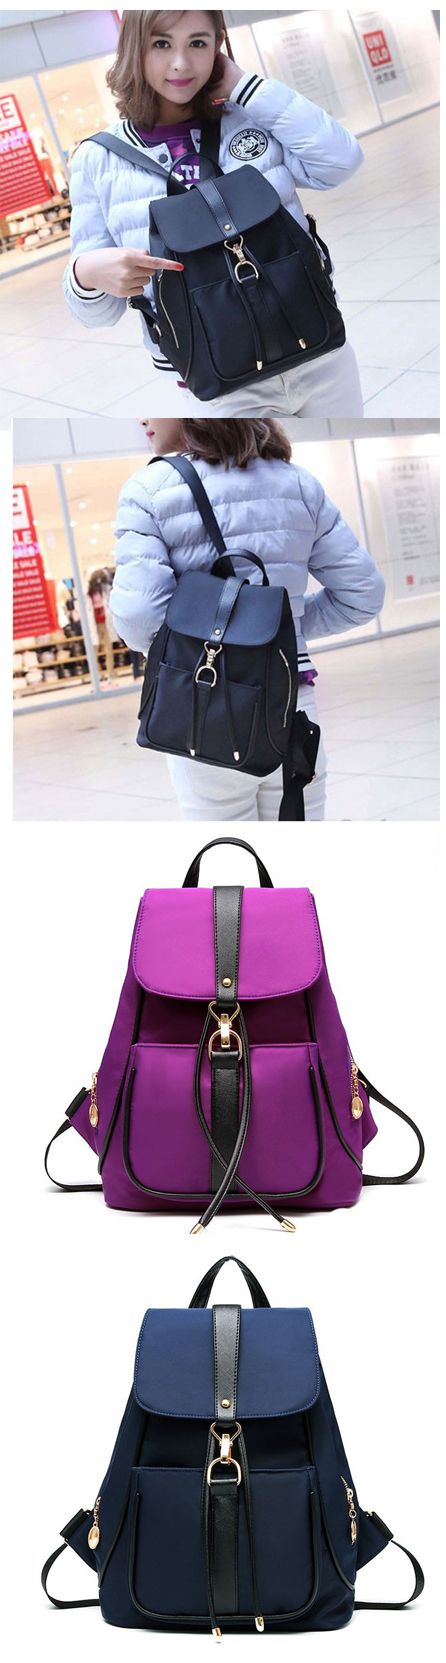 Pure Black Blue Purple School Rucksack Single Button Oxford Travel Backpack backpack trends 2017,backpack trends 2017 school,backpack trends 2017 women,backpack yellow,backpack yellow fashion,backpack pattern,backpack patches,backpack patches diy,backpack patches travel,backpack patches vintage,backpack for teens,backpack for teens school,backpack for teens 2017,backpack for travel,backpack for travel women,backpack for traveling,backpack for traveling bags,backpack for travel cute